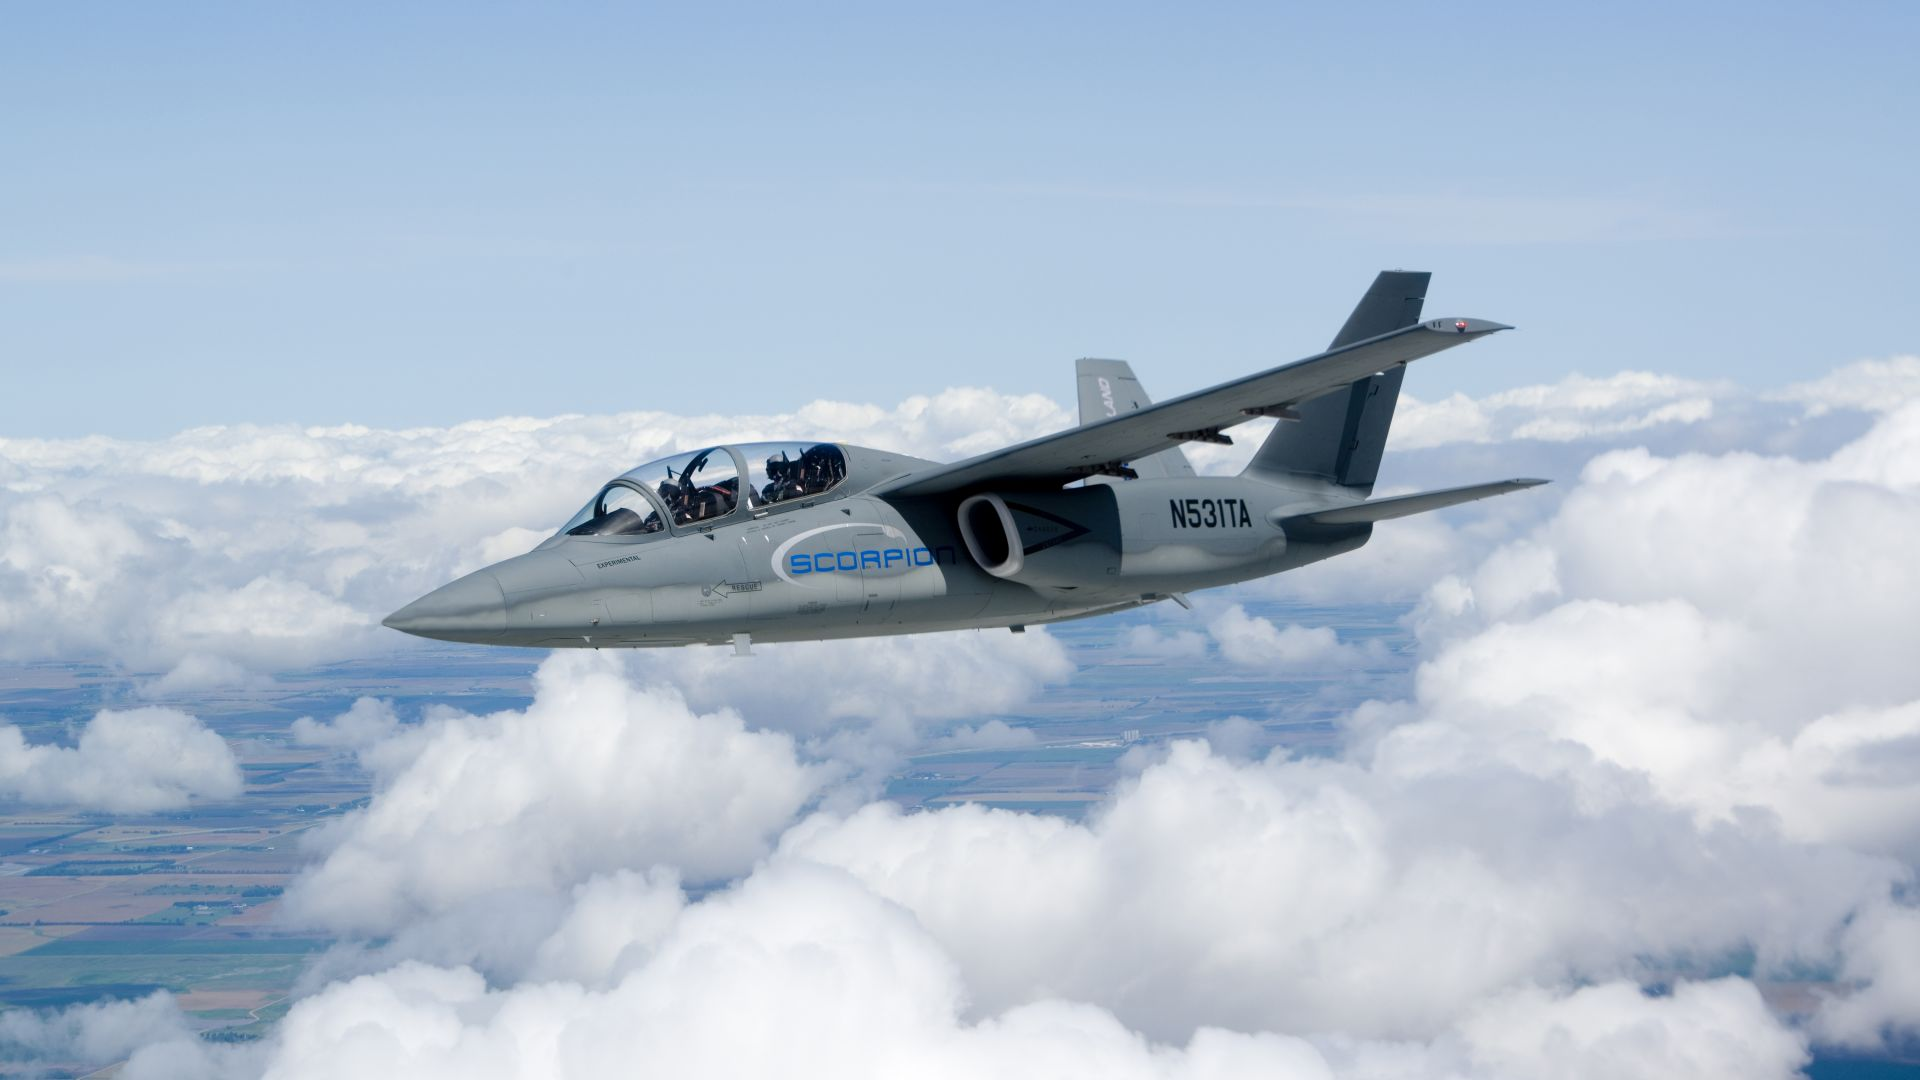 x47 drone with Textron Airland Scorpion Usa Army Fighter Aircraft Air 7881 on Index likewise X 47b furthermore Black Ops 2 Vehicles And Weapons Part 1 391968672 further Navy Conducts First Aerial Refueling Of X 47b Carrier Launched Drone moreover X 47 Pics.